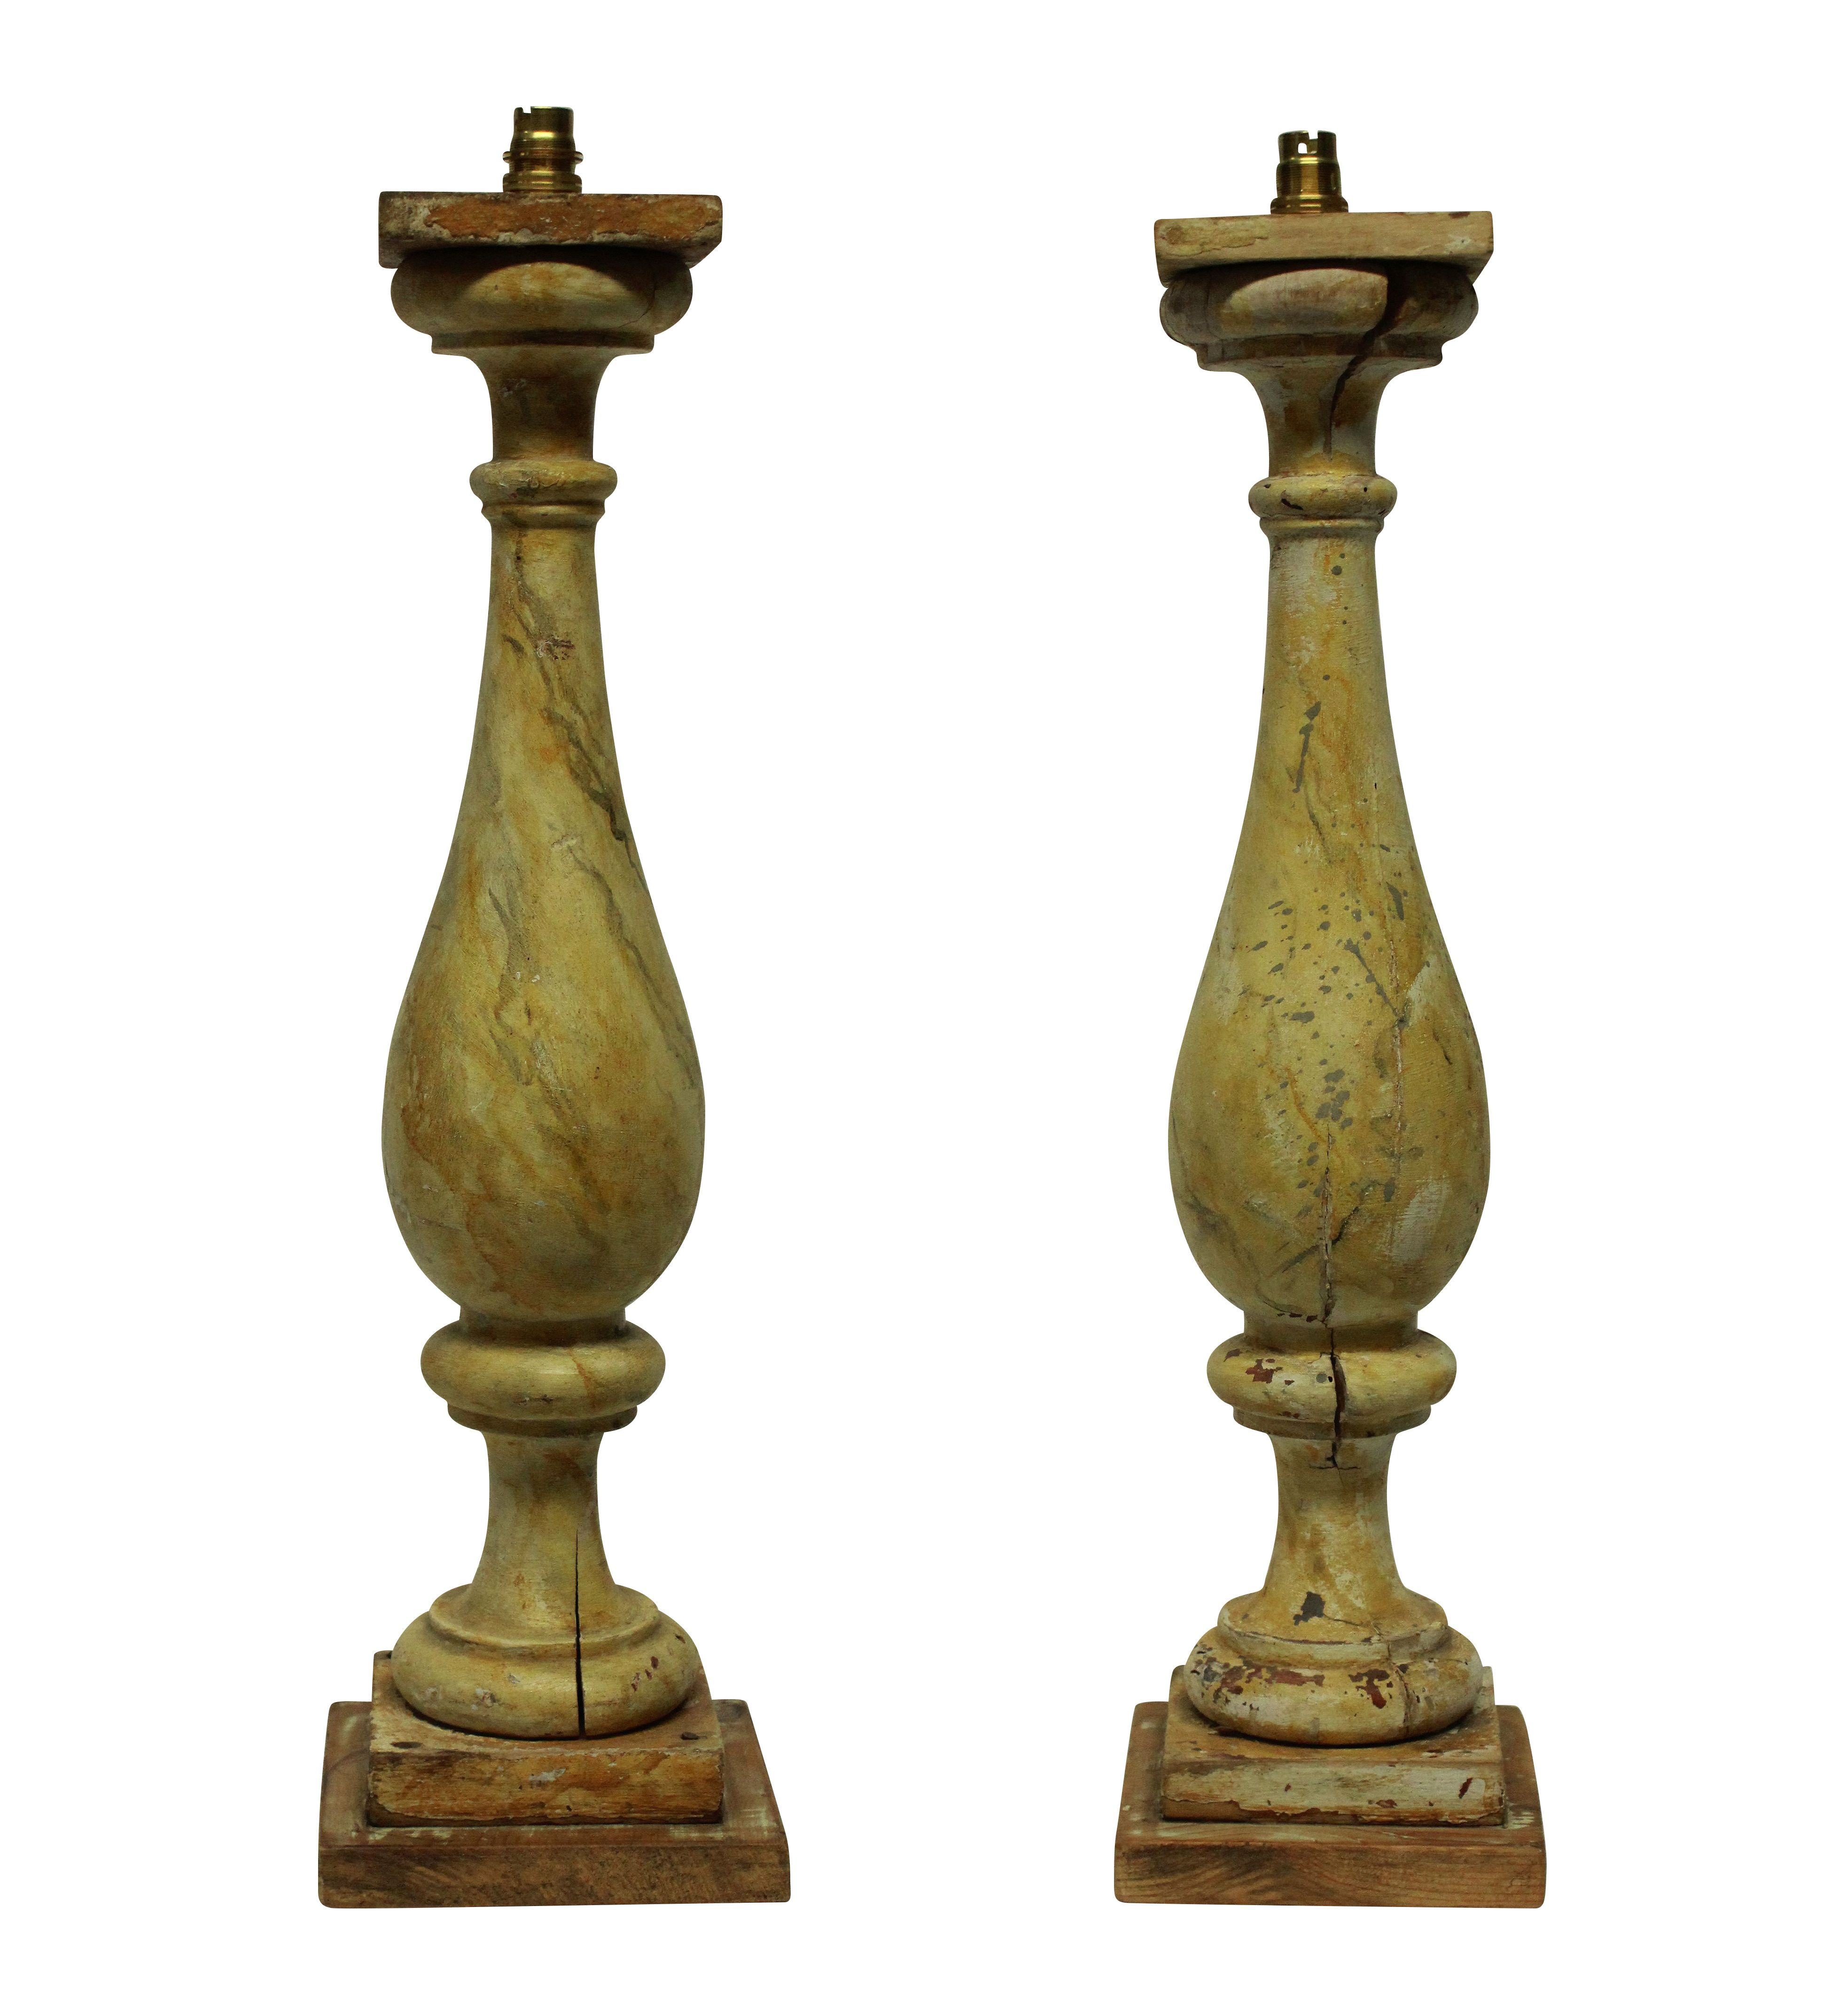 A PAIR OF LARGE XIX CENTURY BALUSTRADE LAMPS